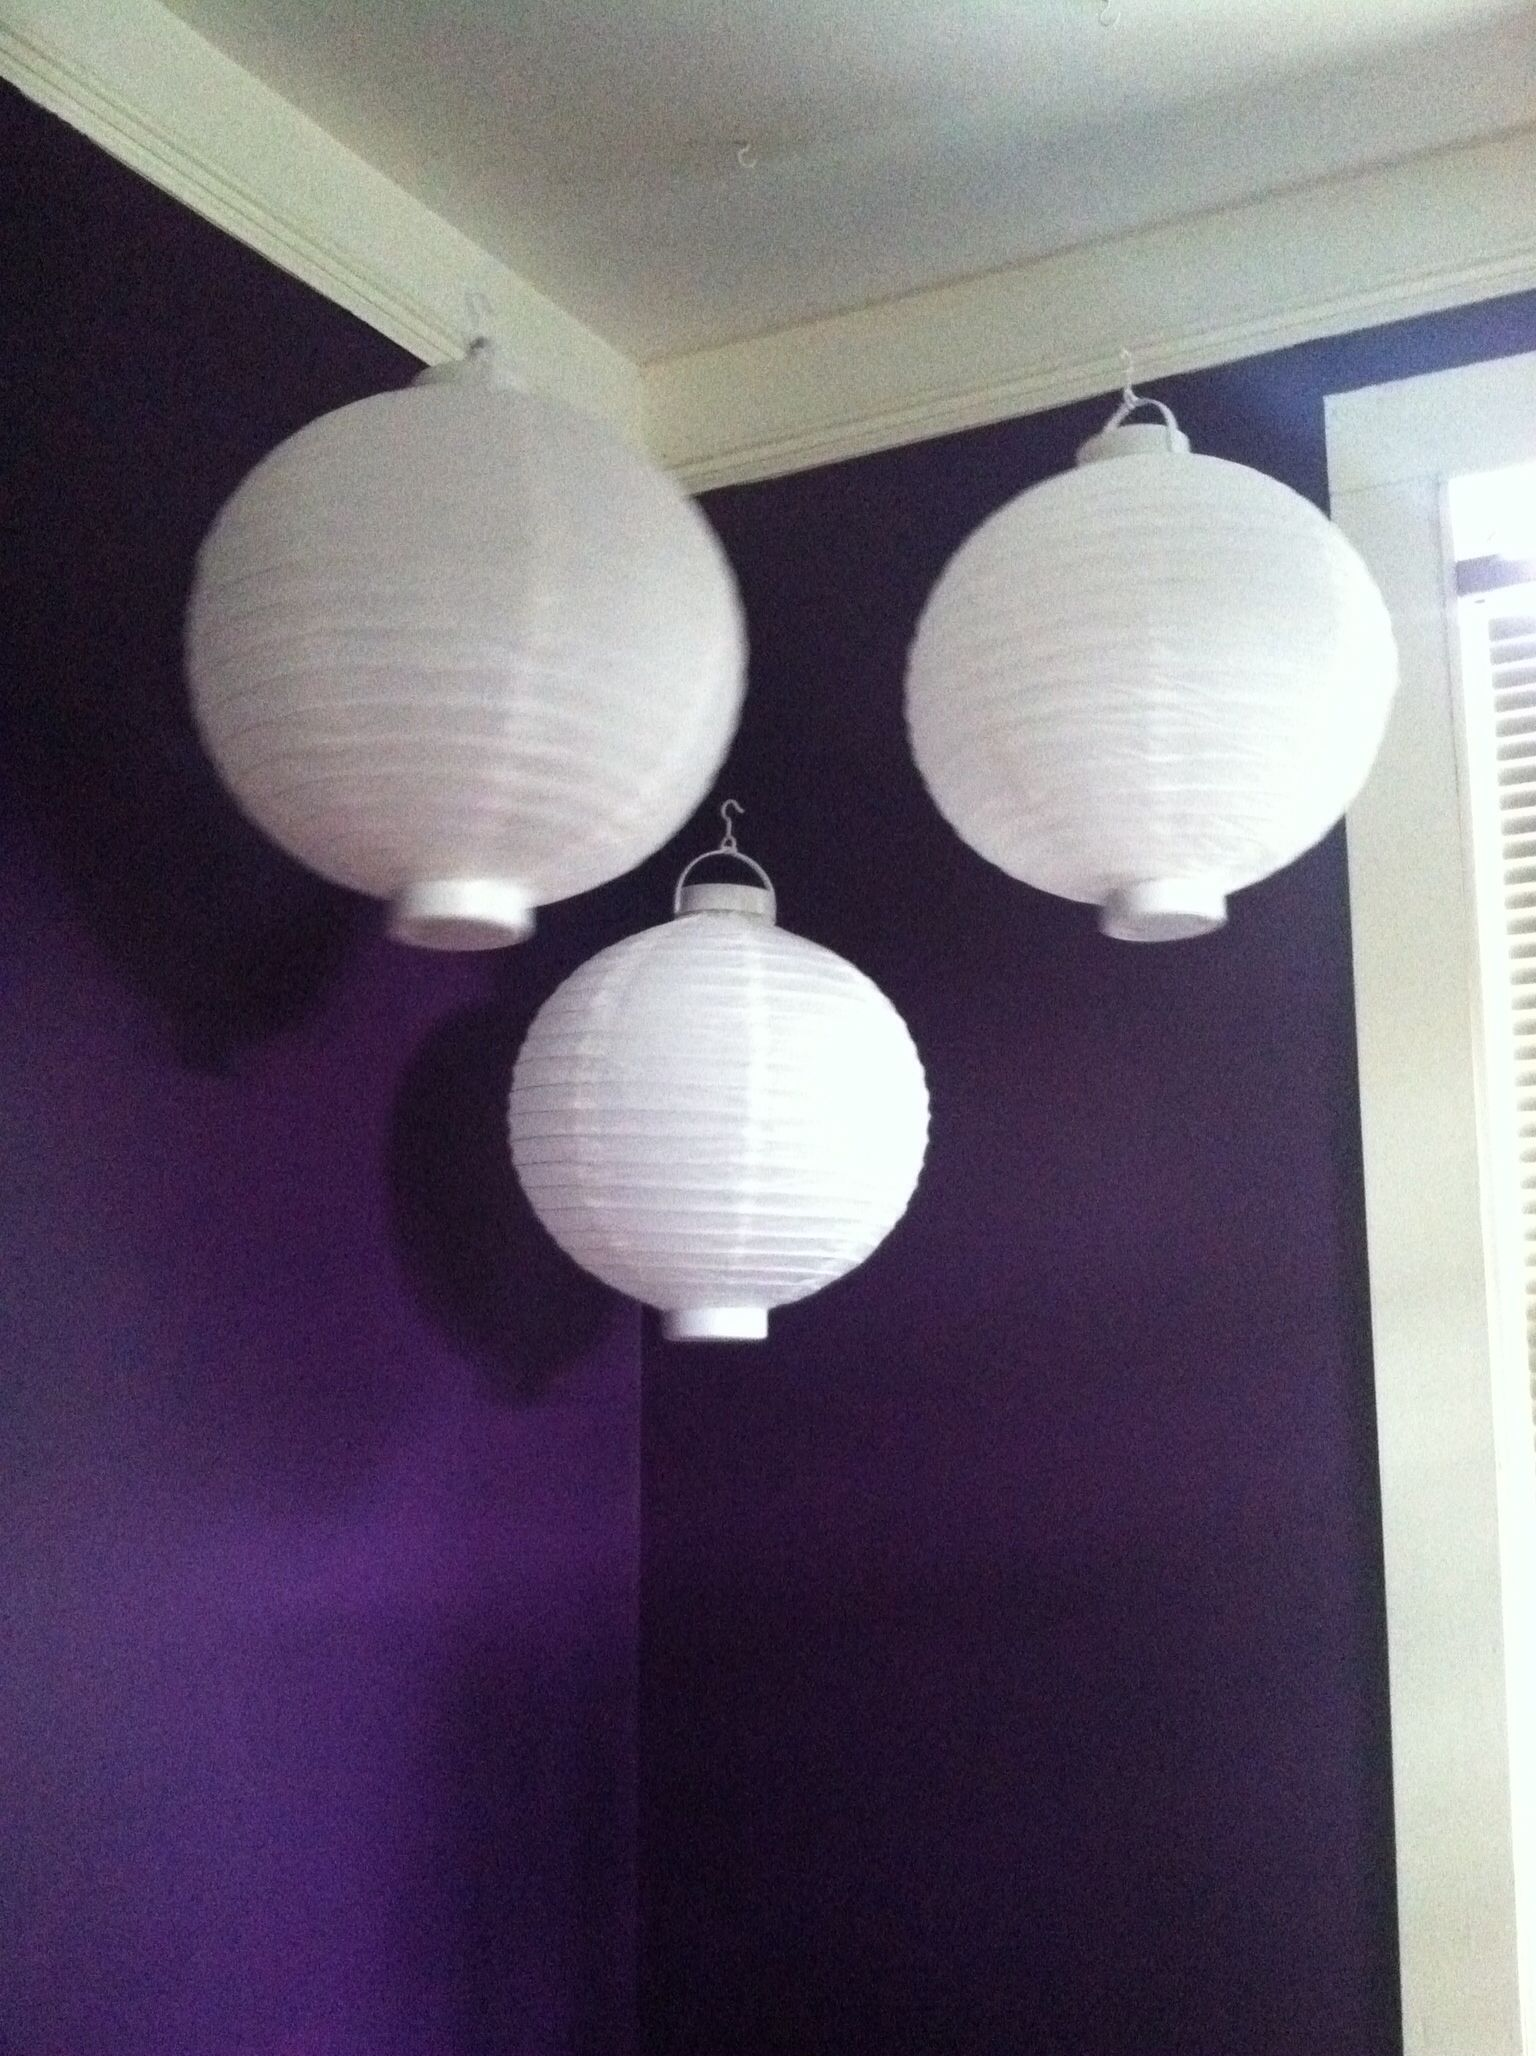 Add lanterns to your room for extra light or decor.